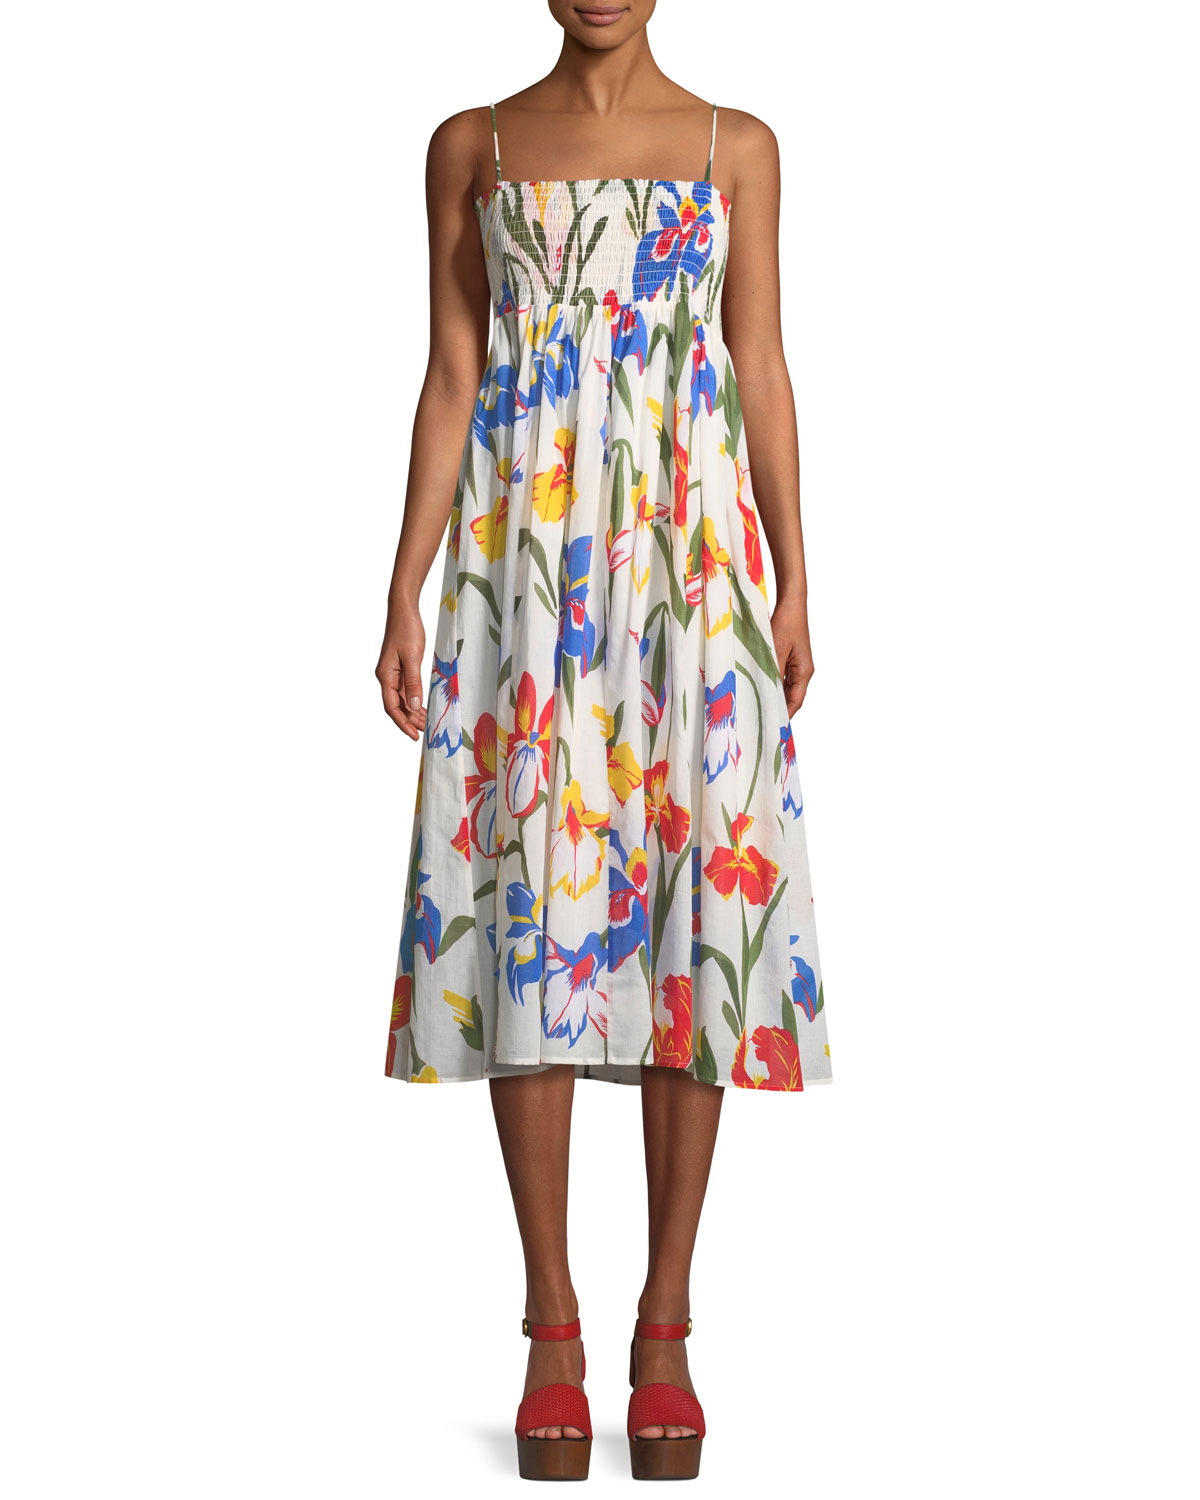 Tory Burch Textured Midi Dress Buy Cheap 2018 Unisex Clearance Manchester Great Sale Recommend Online lF7Wbef